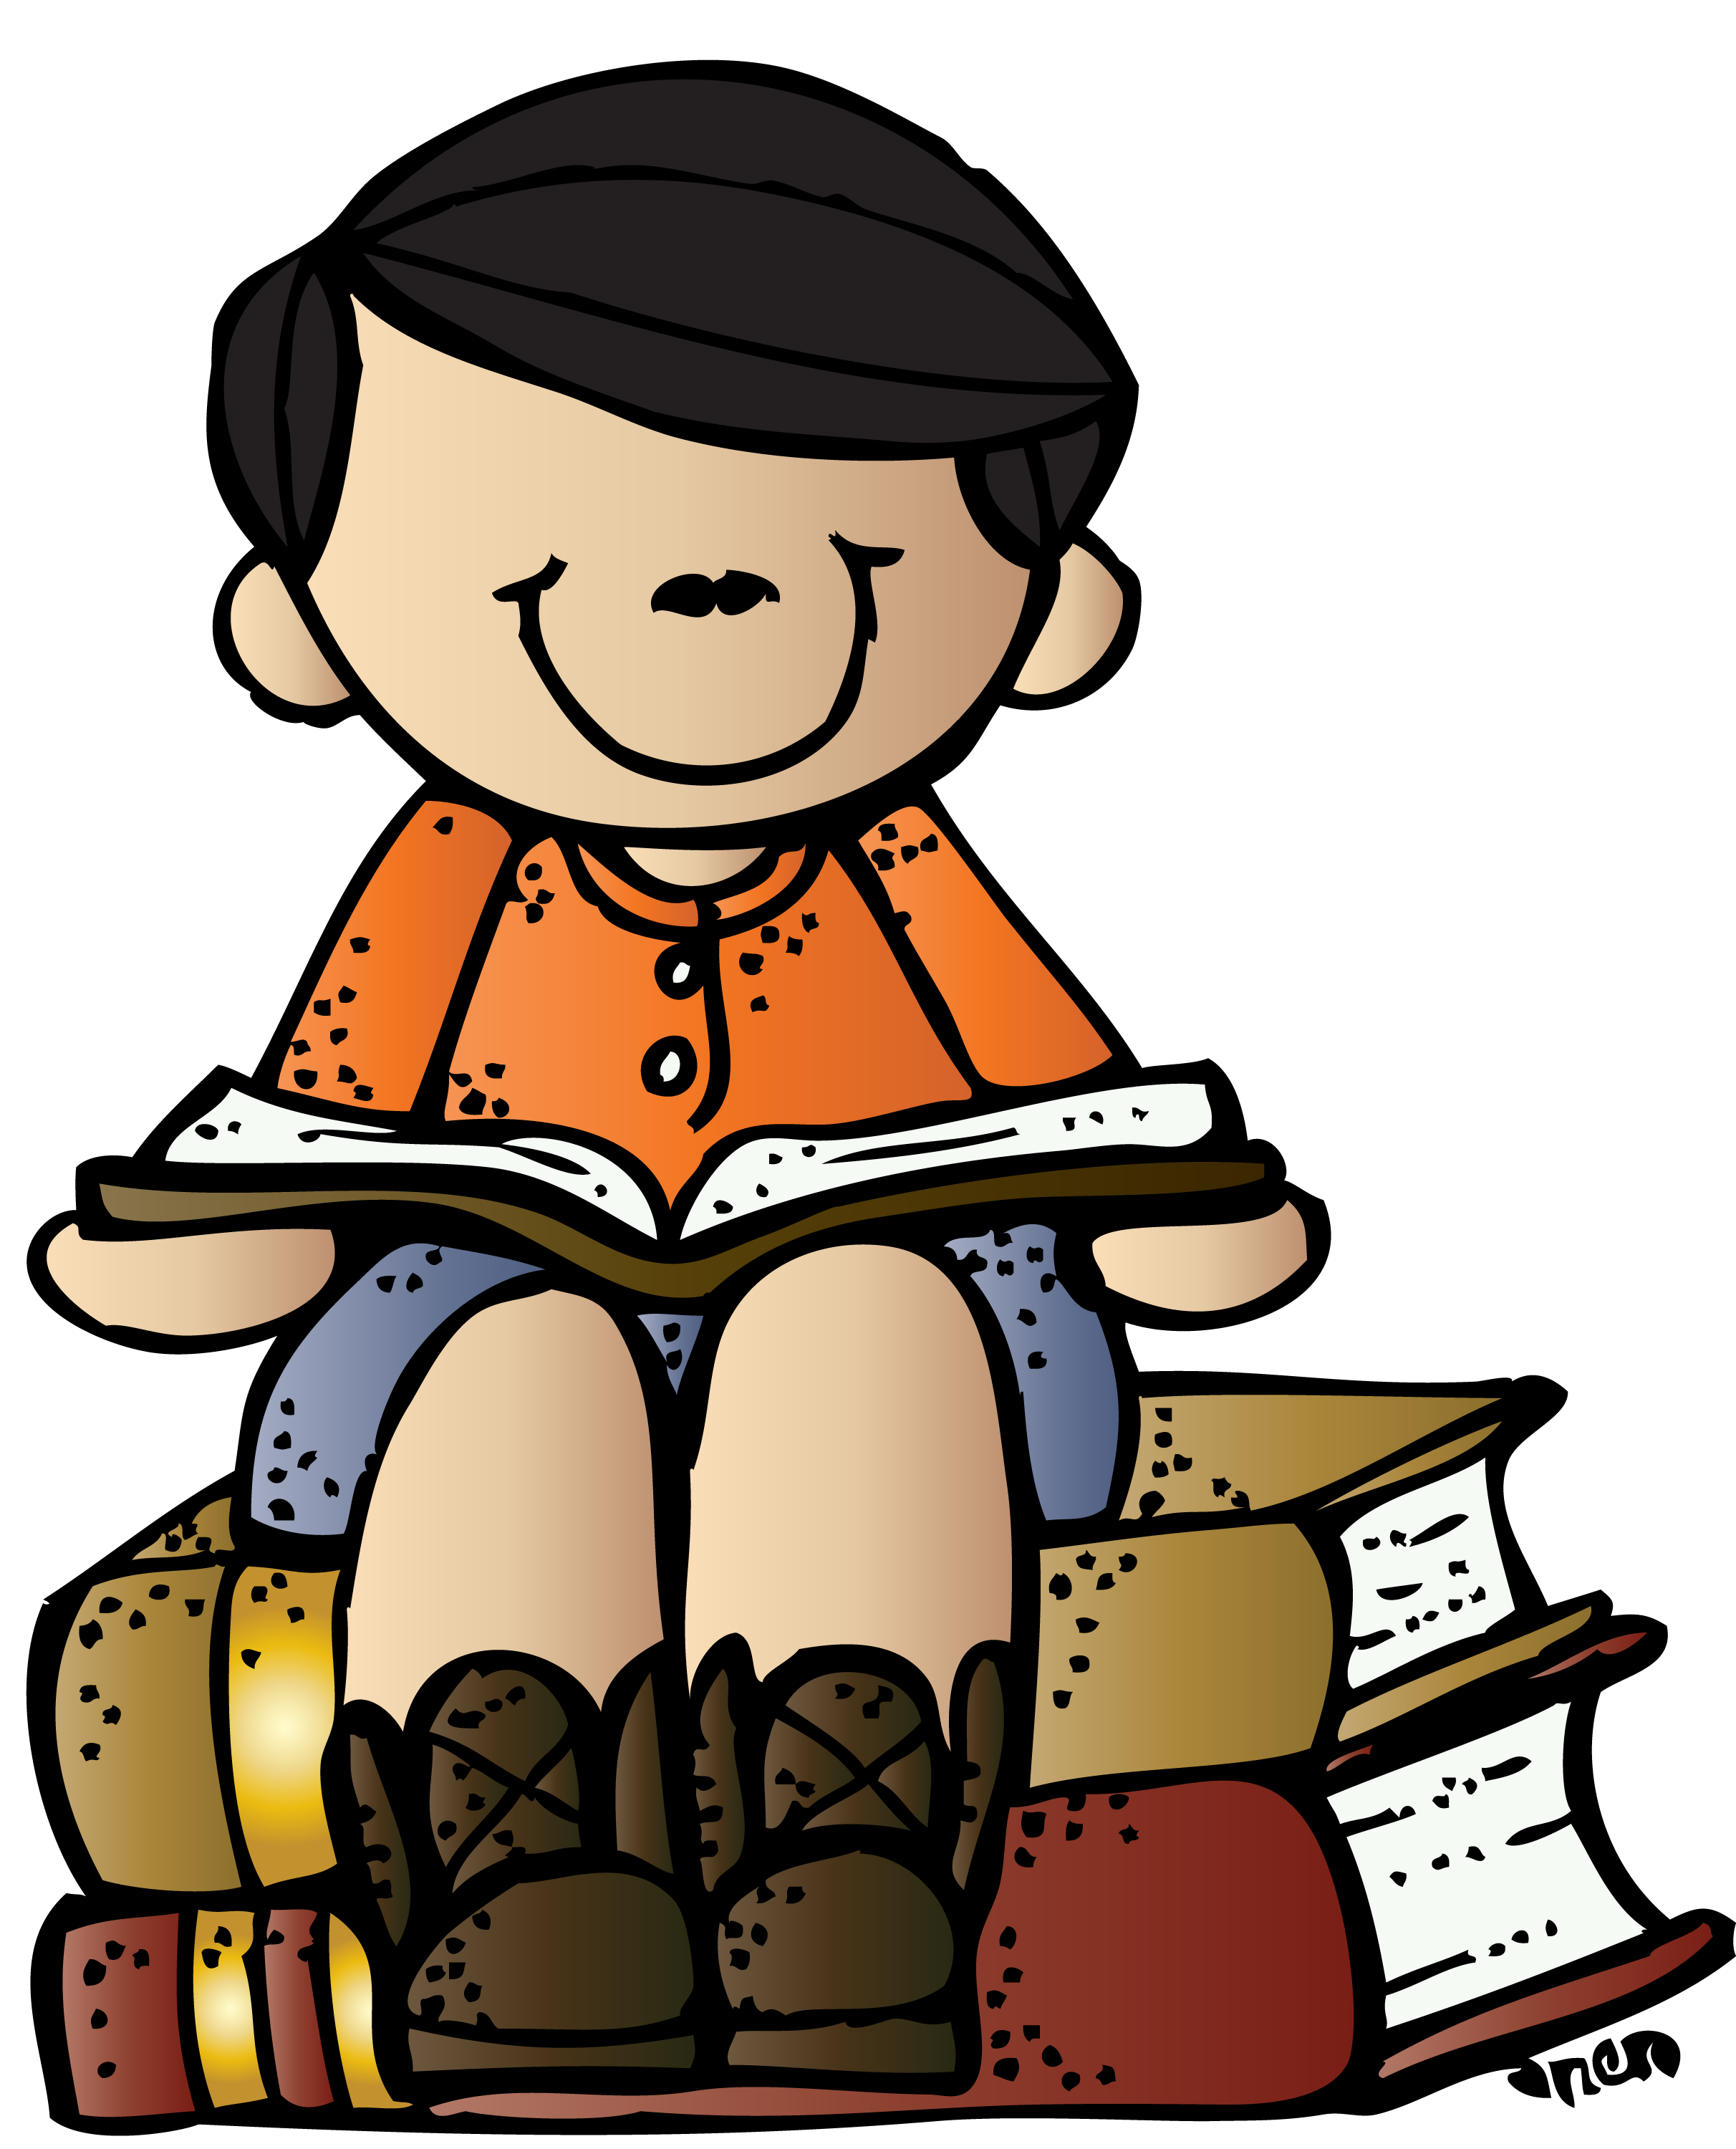 A boy reading a book clipart png royalty free stock Melonheadz Writing Boy on books c melonheadz | Clipart: Boy Theme ... png royalty free stock